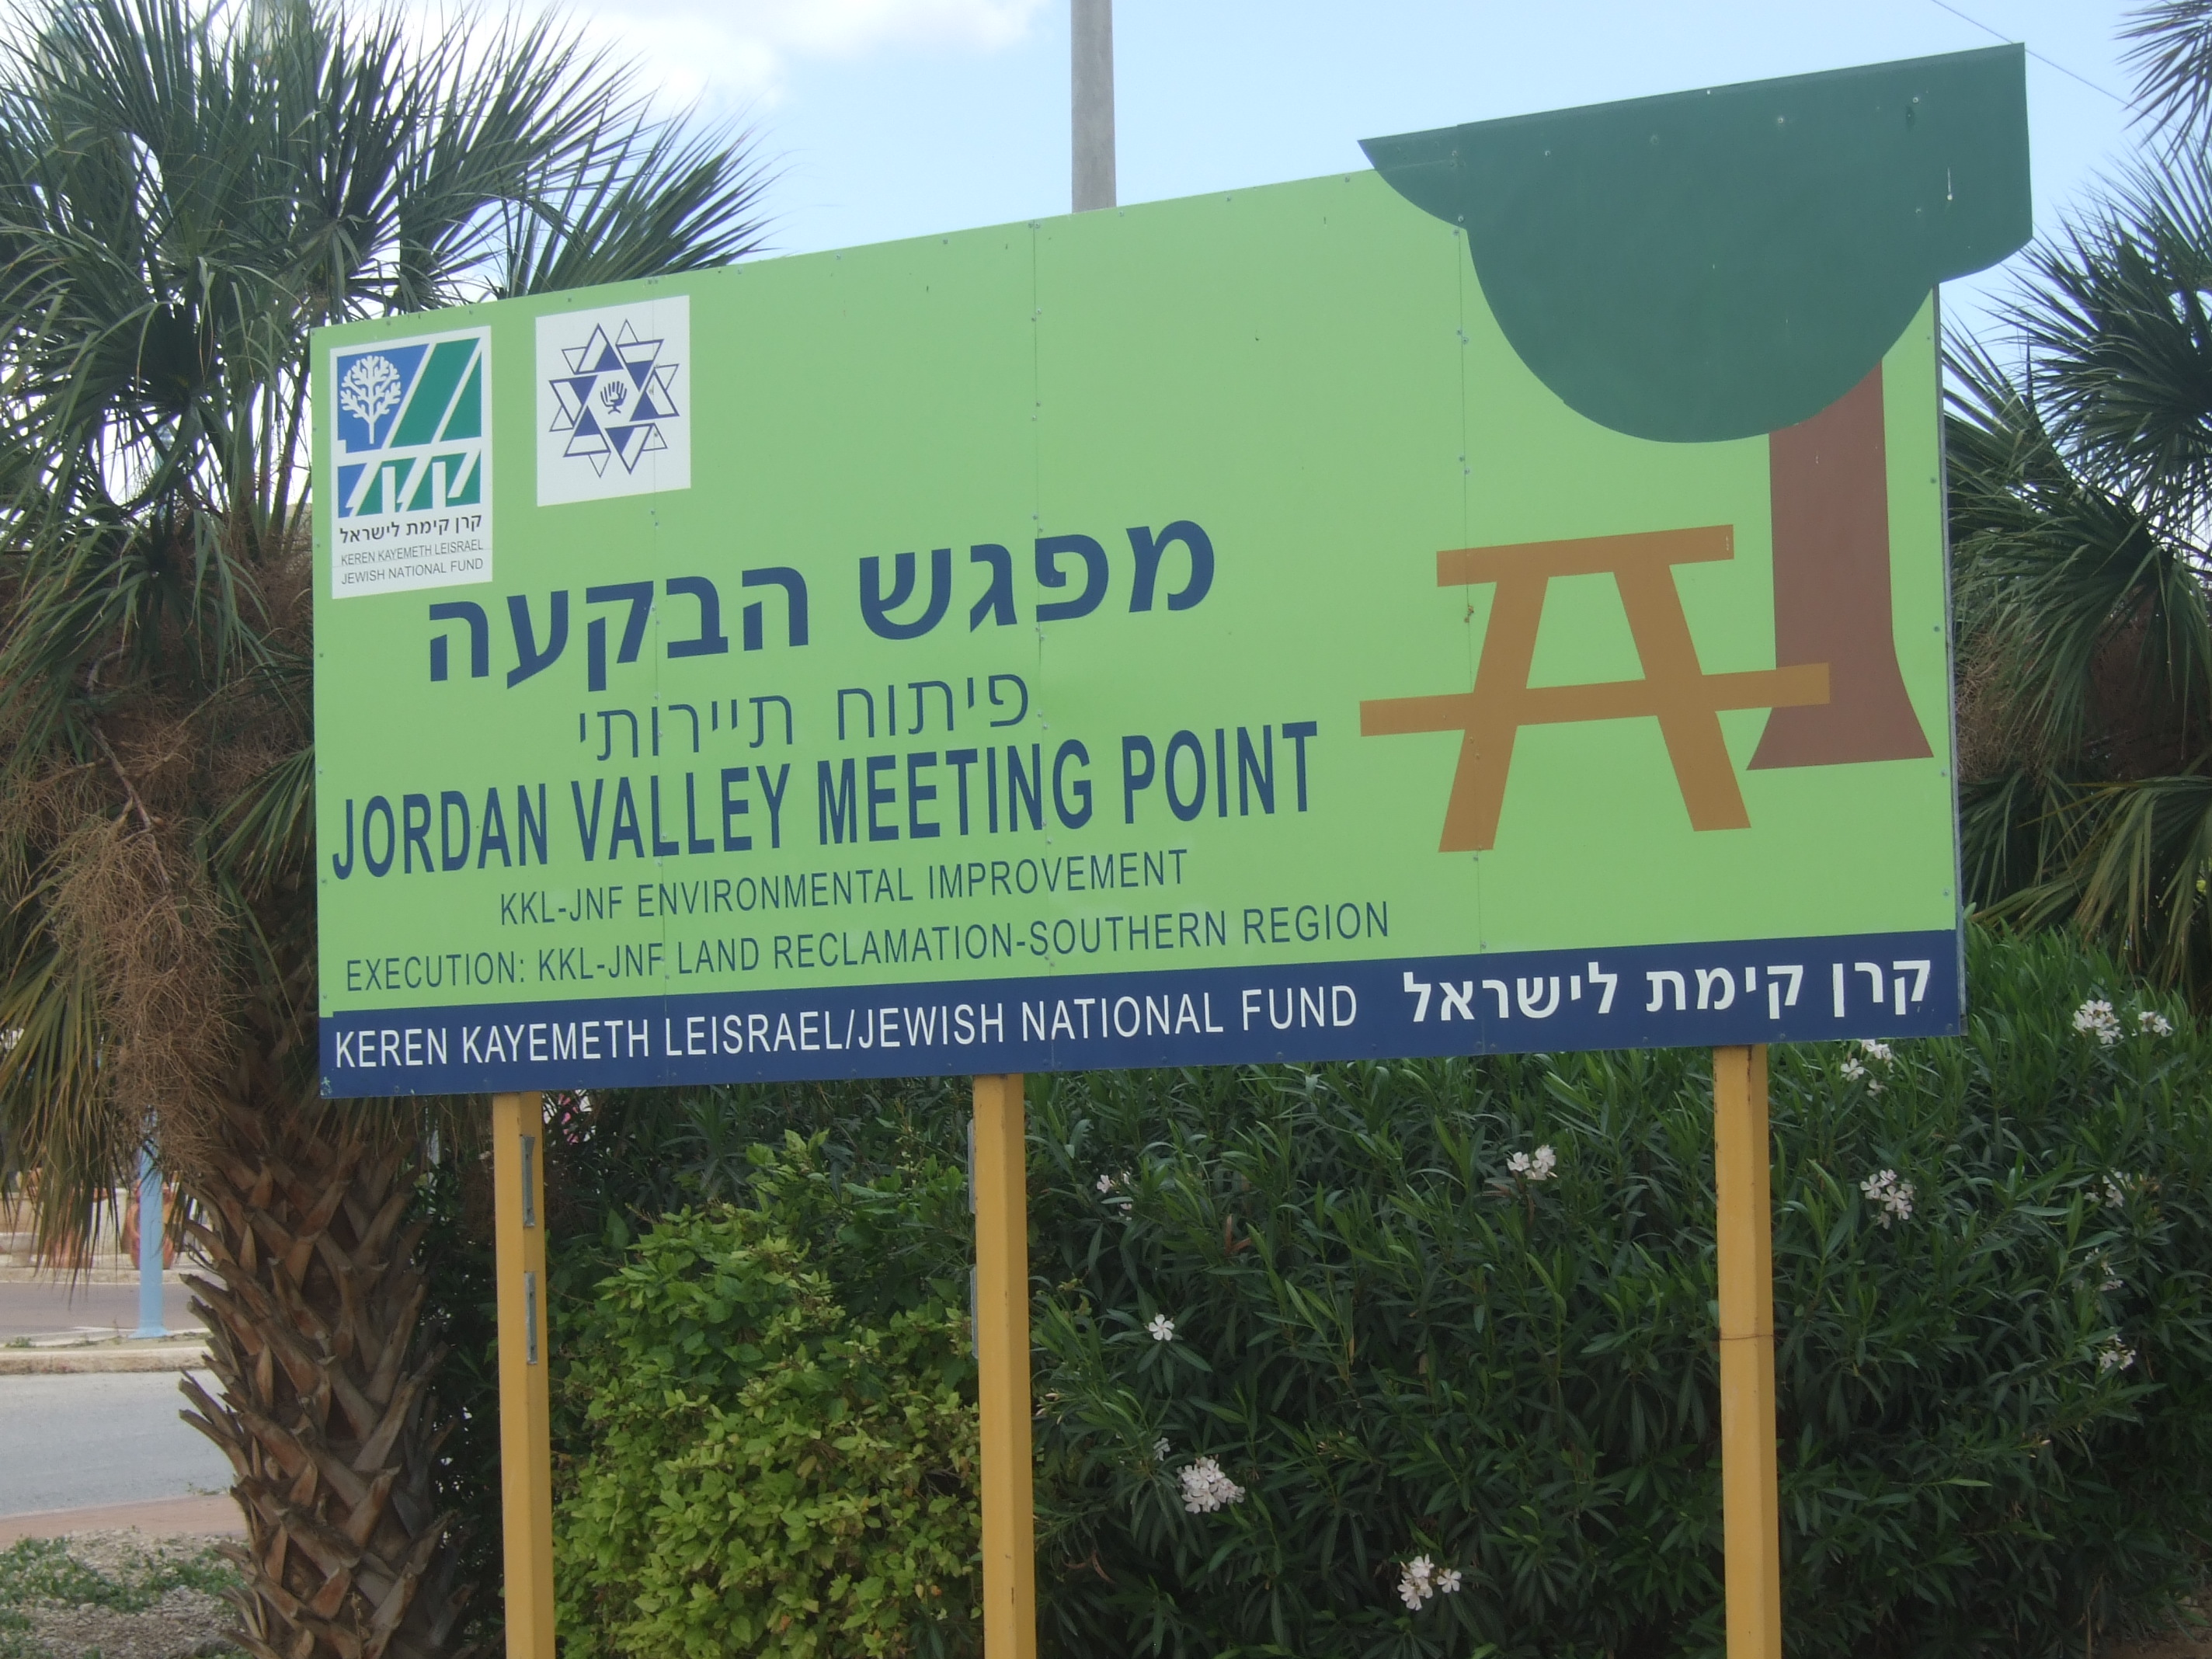 jordan valley jewish personals Start meeting singles in jordan valley today with our free online personals and free jordan valley jordan valley jewish singles jordan valley hindu singles.